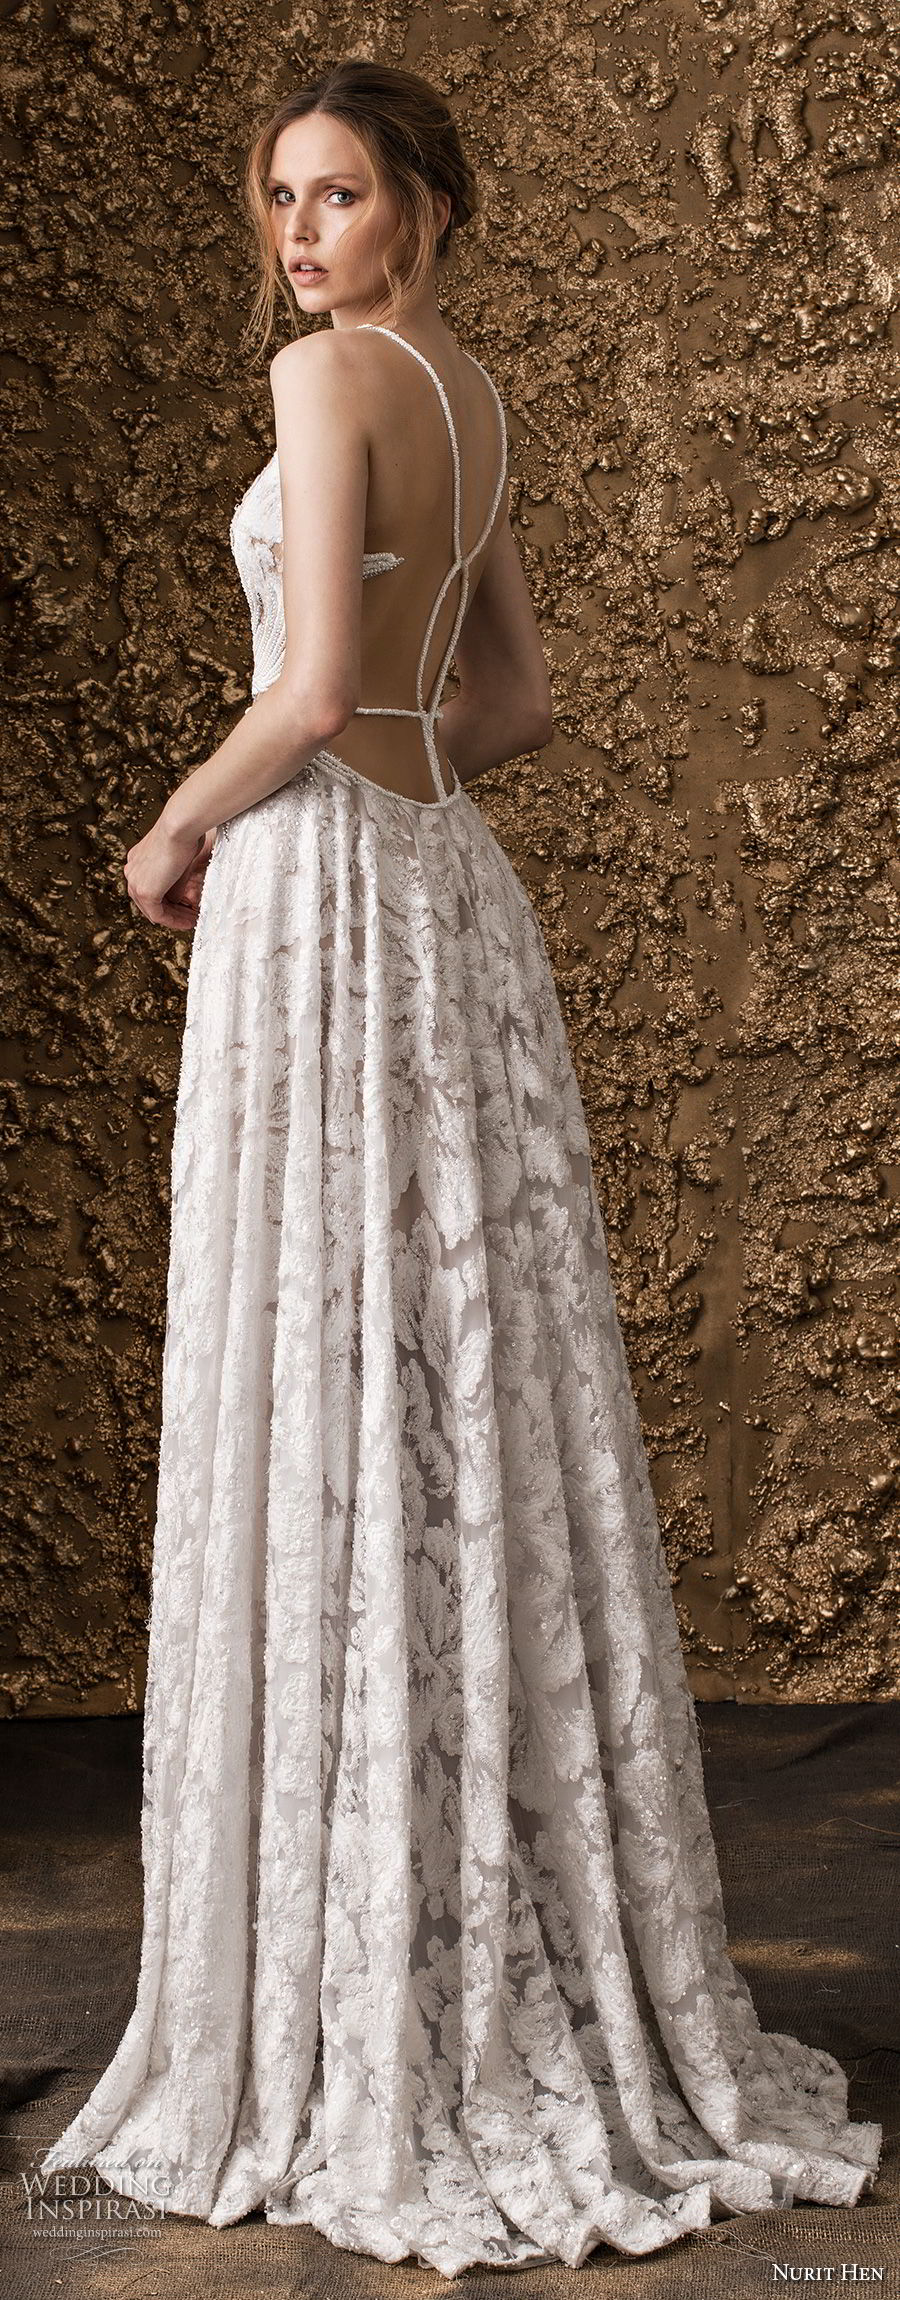 nurit hen 2018 bridal sleeveless thin strap full embellishment elegant modified a  line wedding dress open strap back sweep train (17) bv